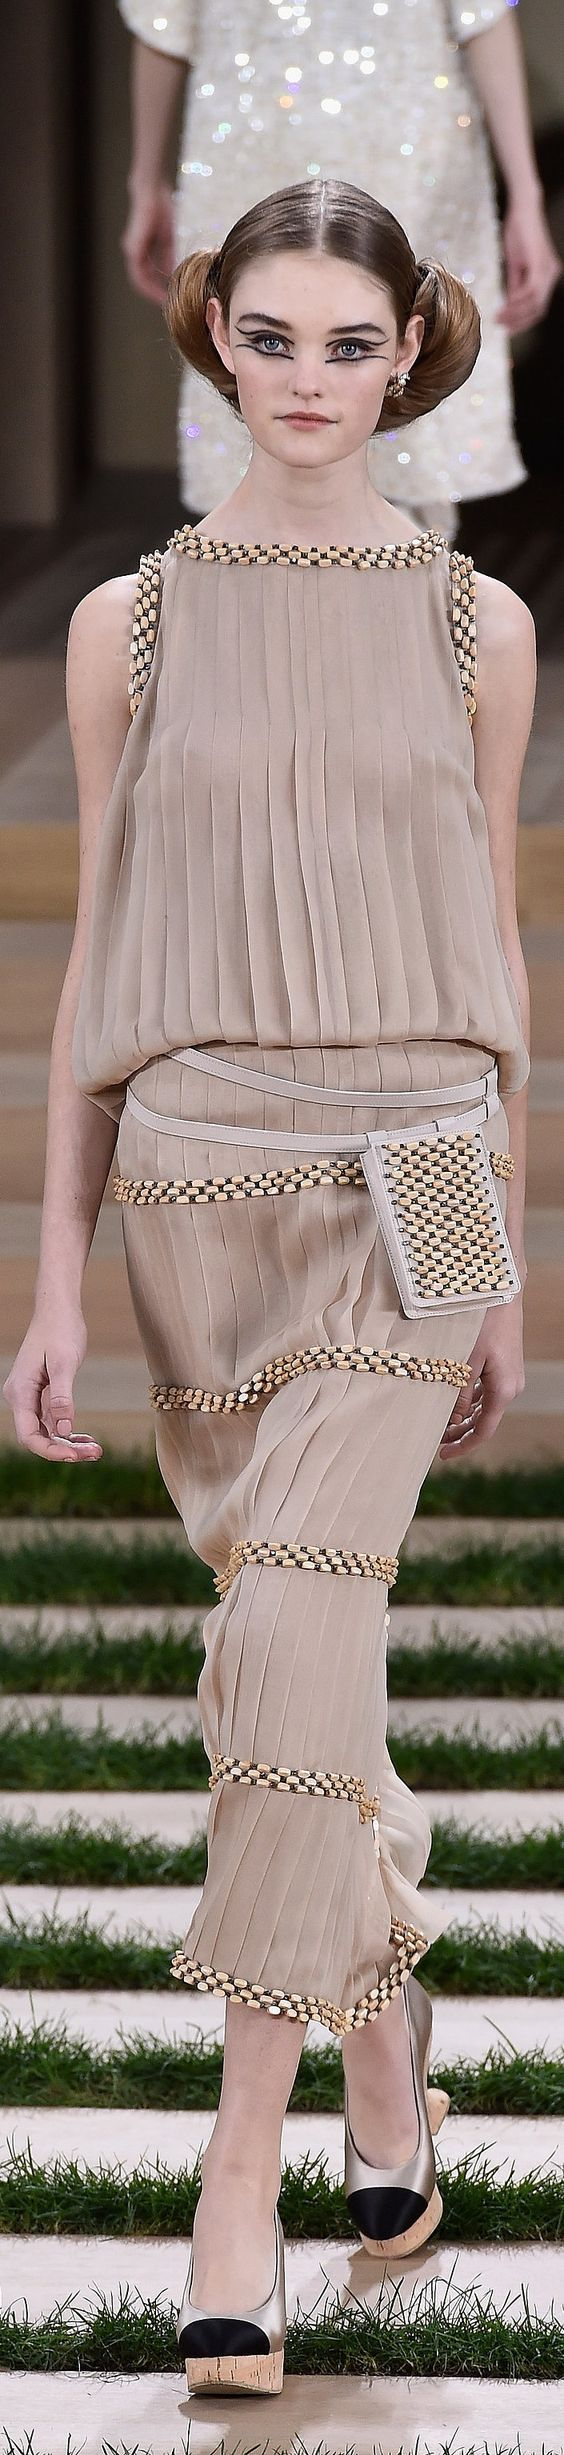 The belt in this garment distribute the fabric so the dress doesn't look like a straight tubular piece of fabric, but make it look like it slightly resemble the female figure. That is how this garment follows the principle o balance.